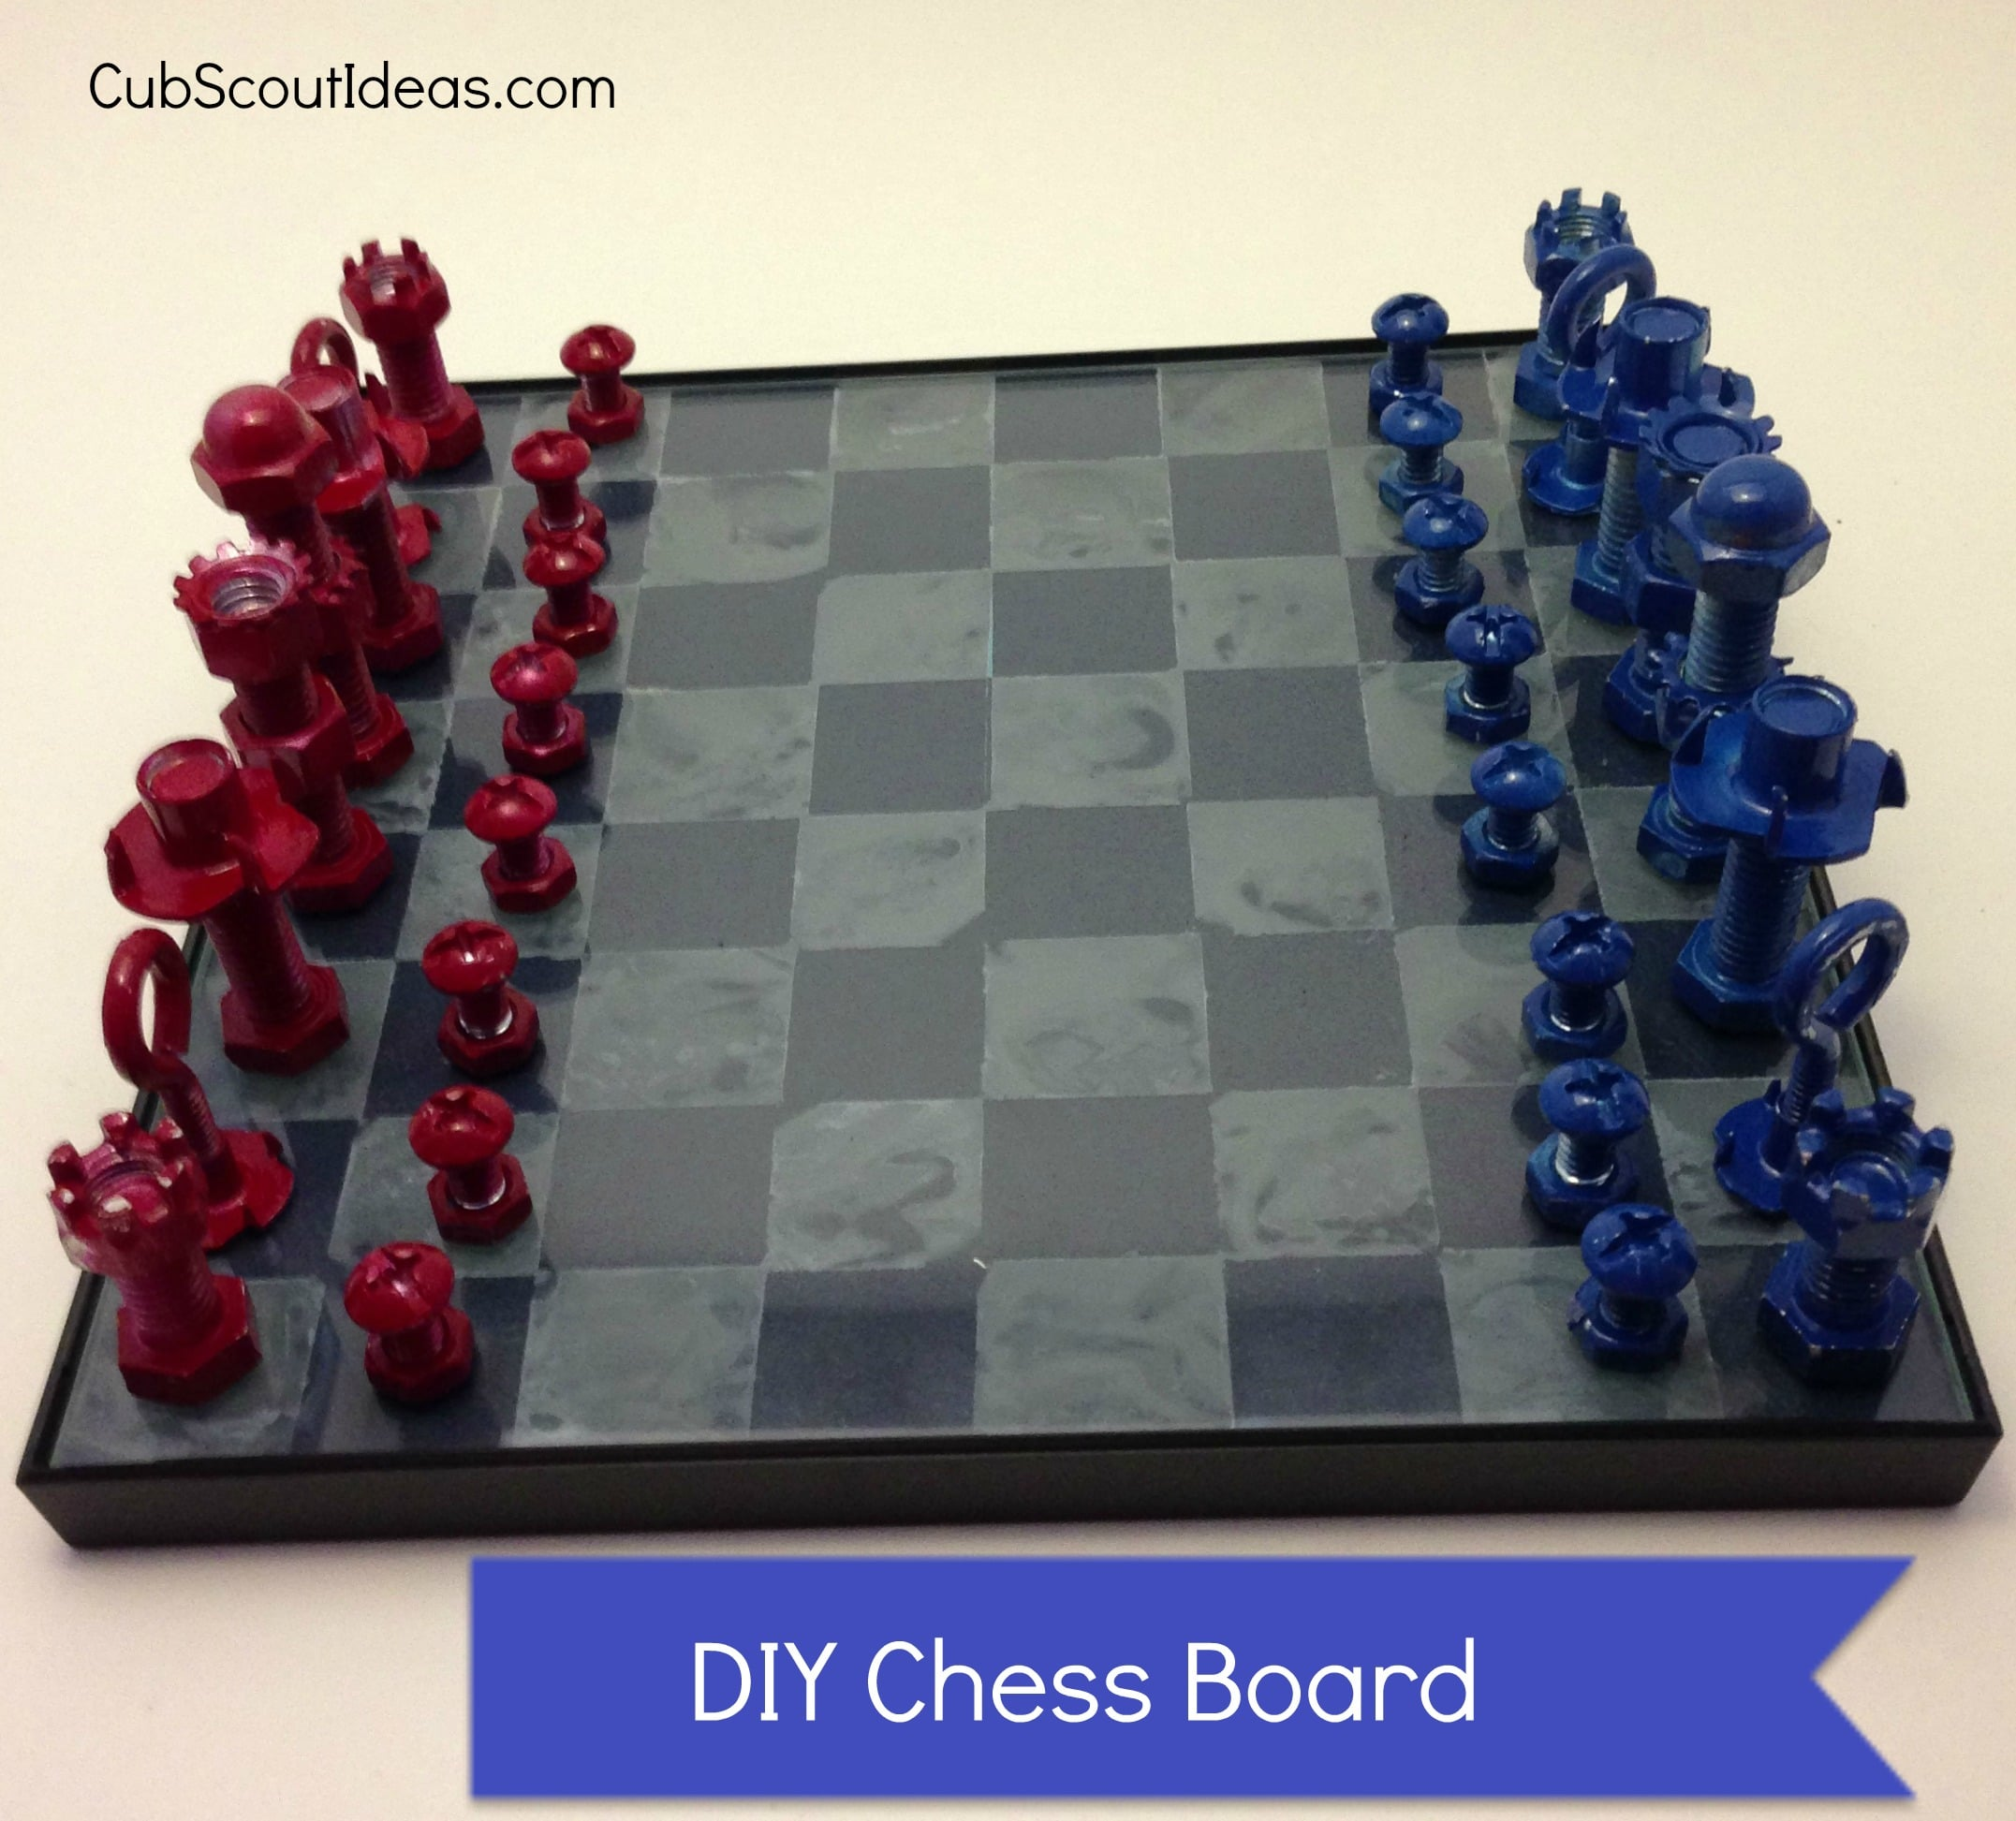 Diy Wood Chess Board How To Make A Chess Set With Nuts And Bolts Cub Scout Ideas